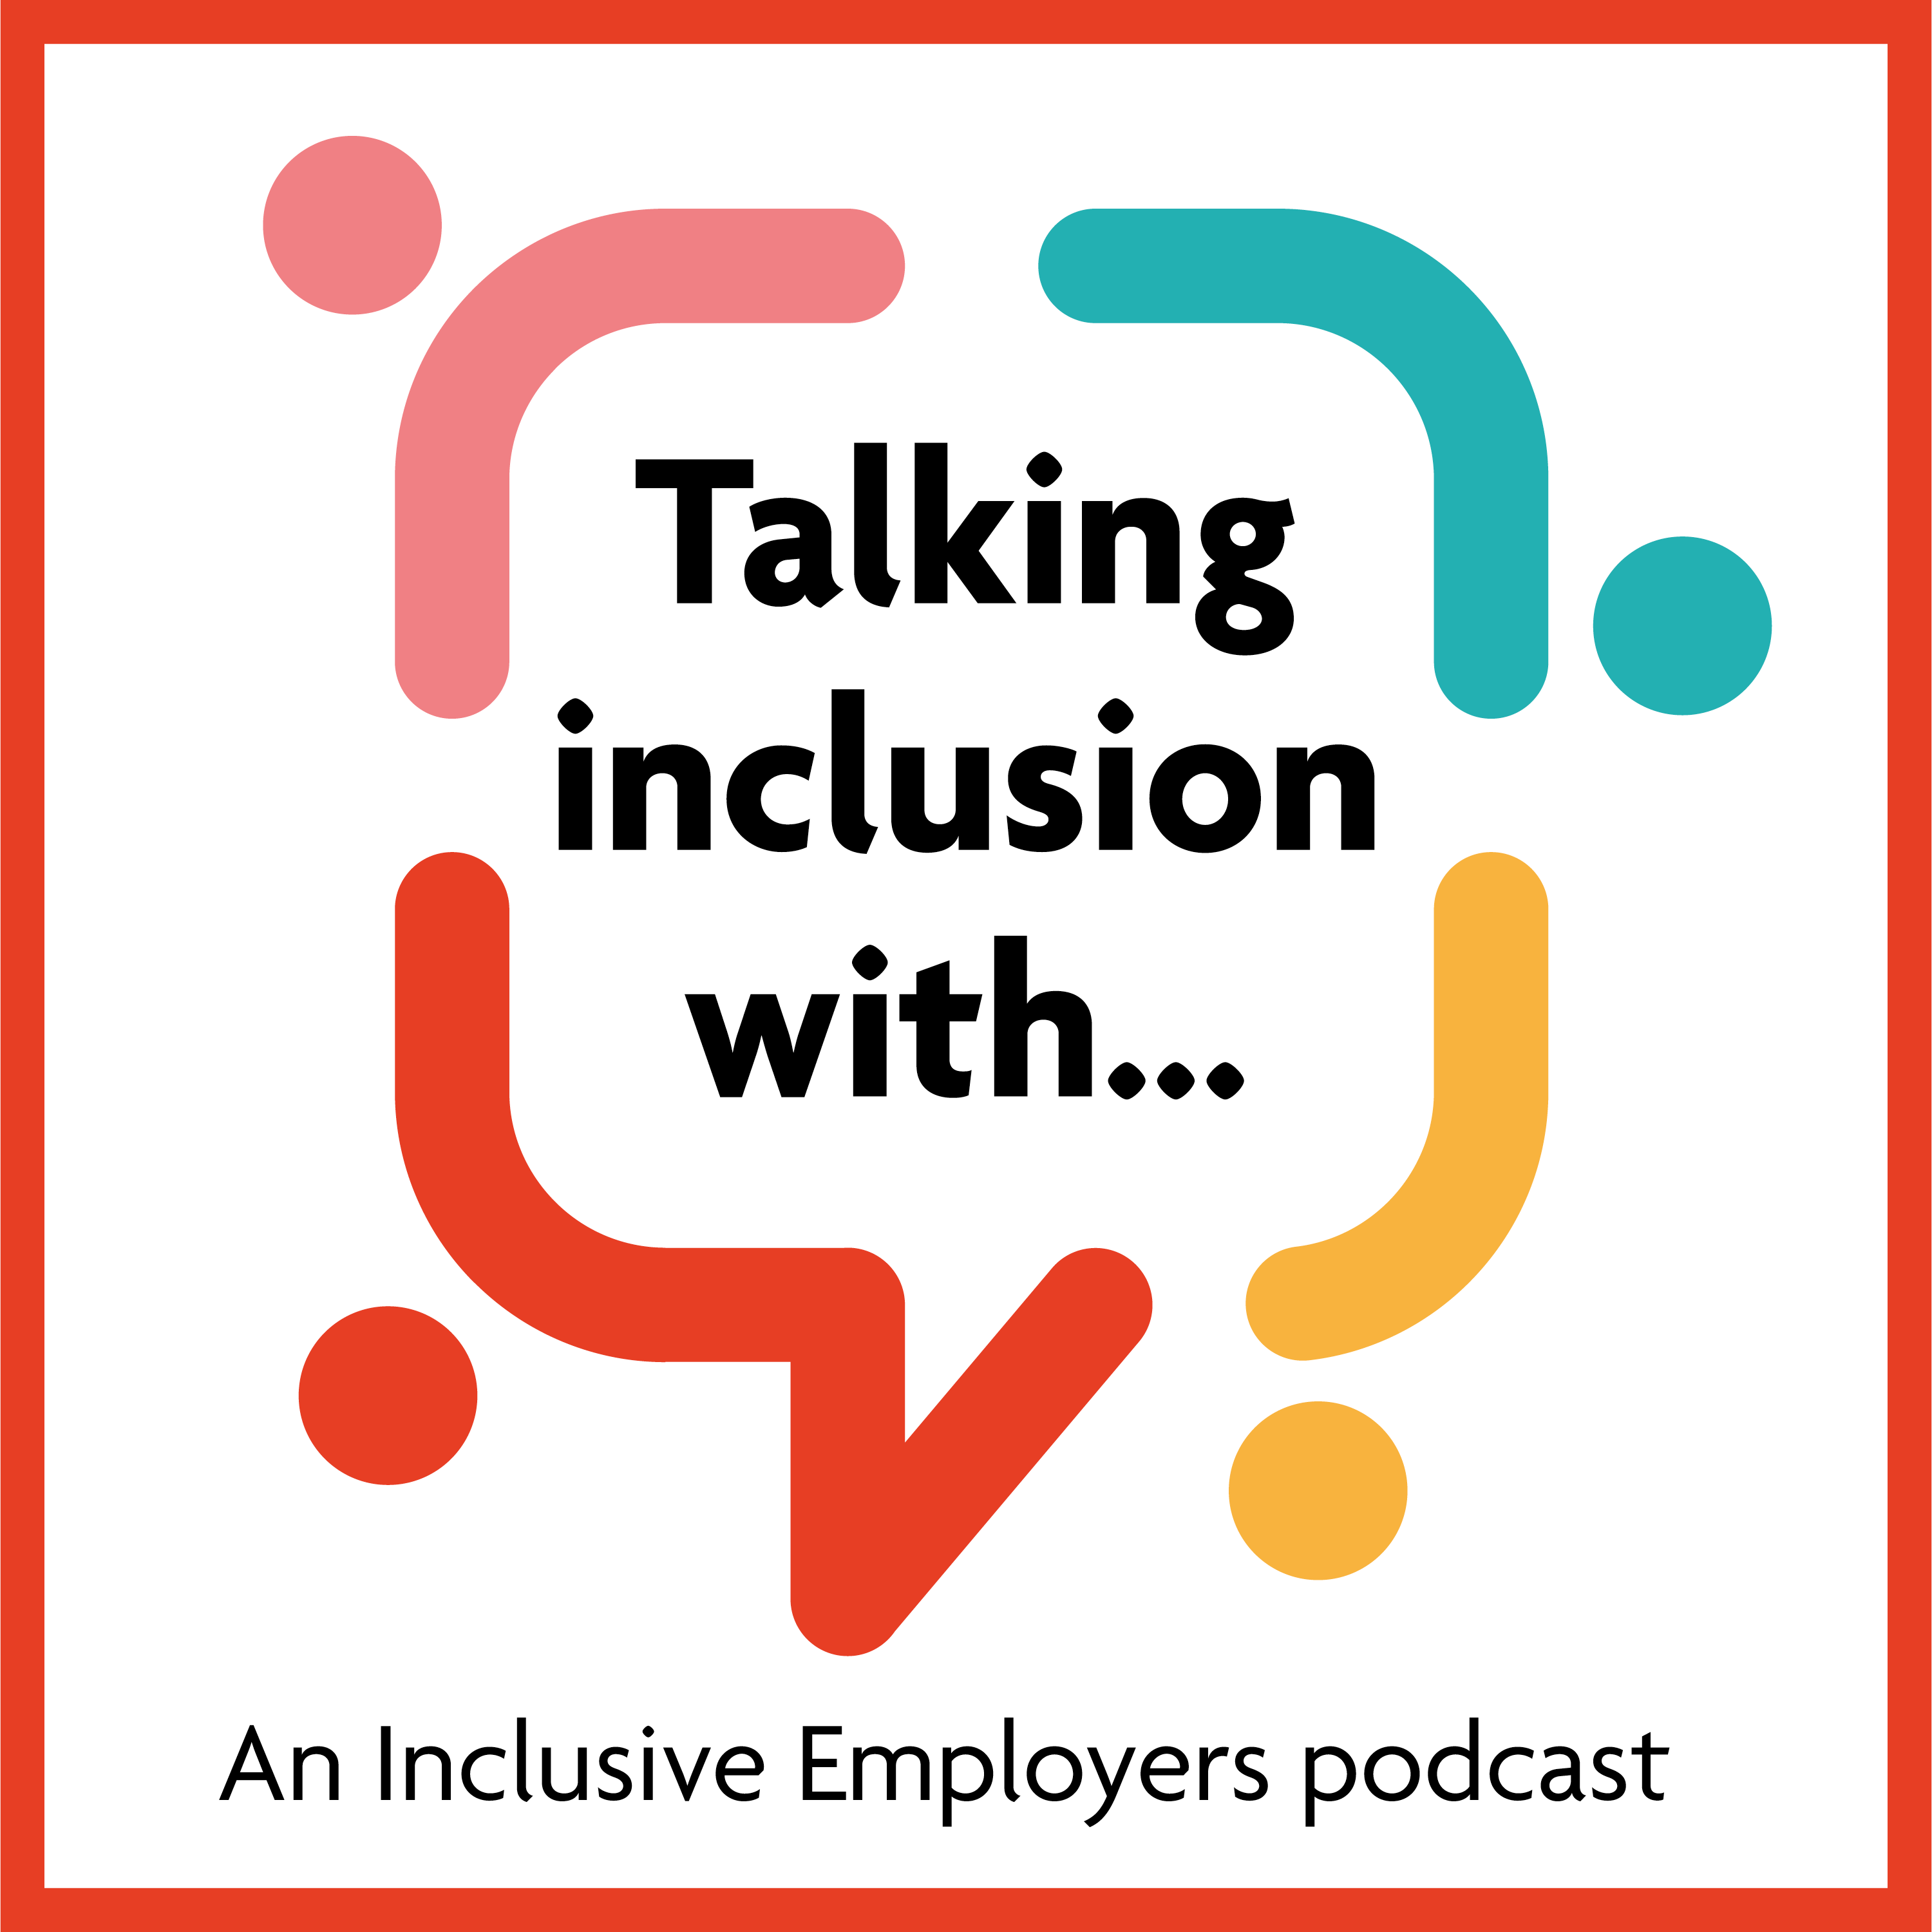 Talking inclusion with... logo